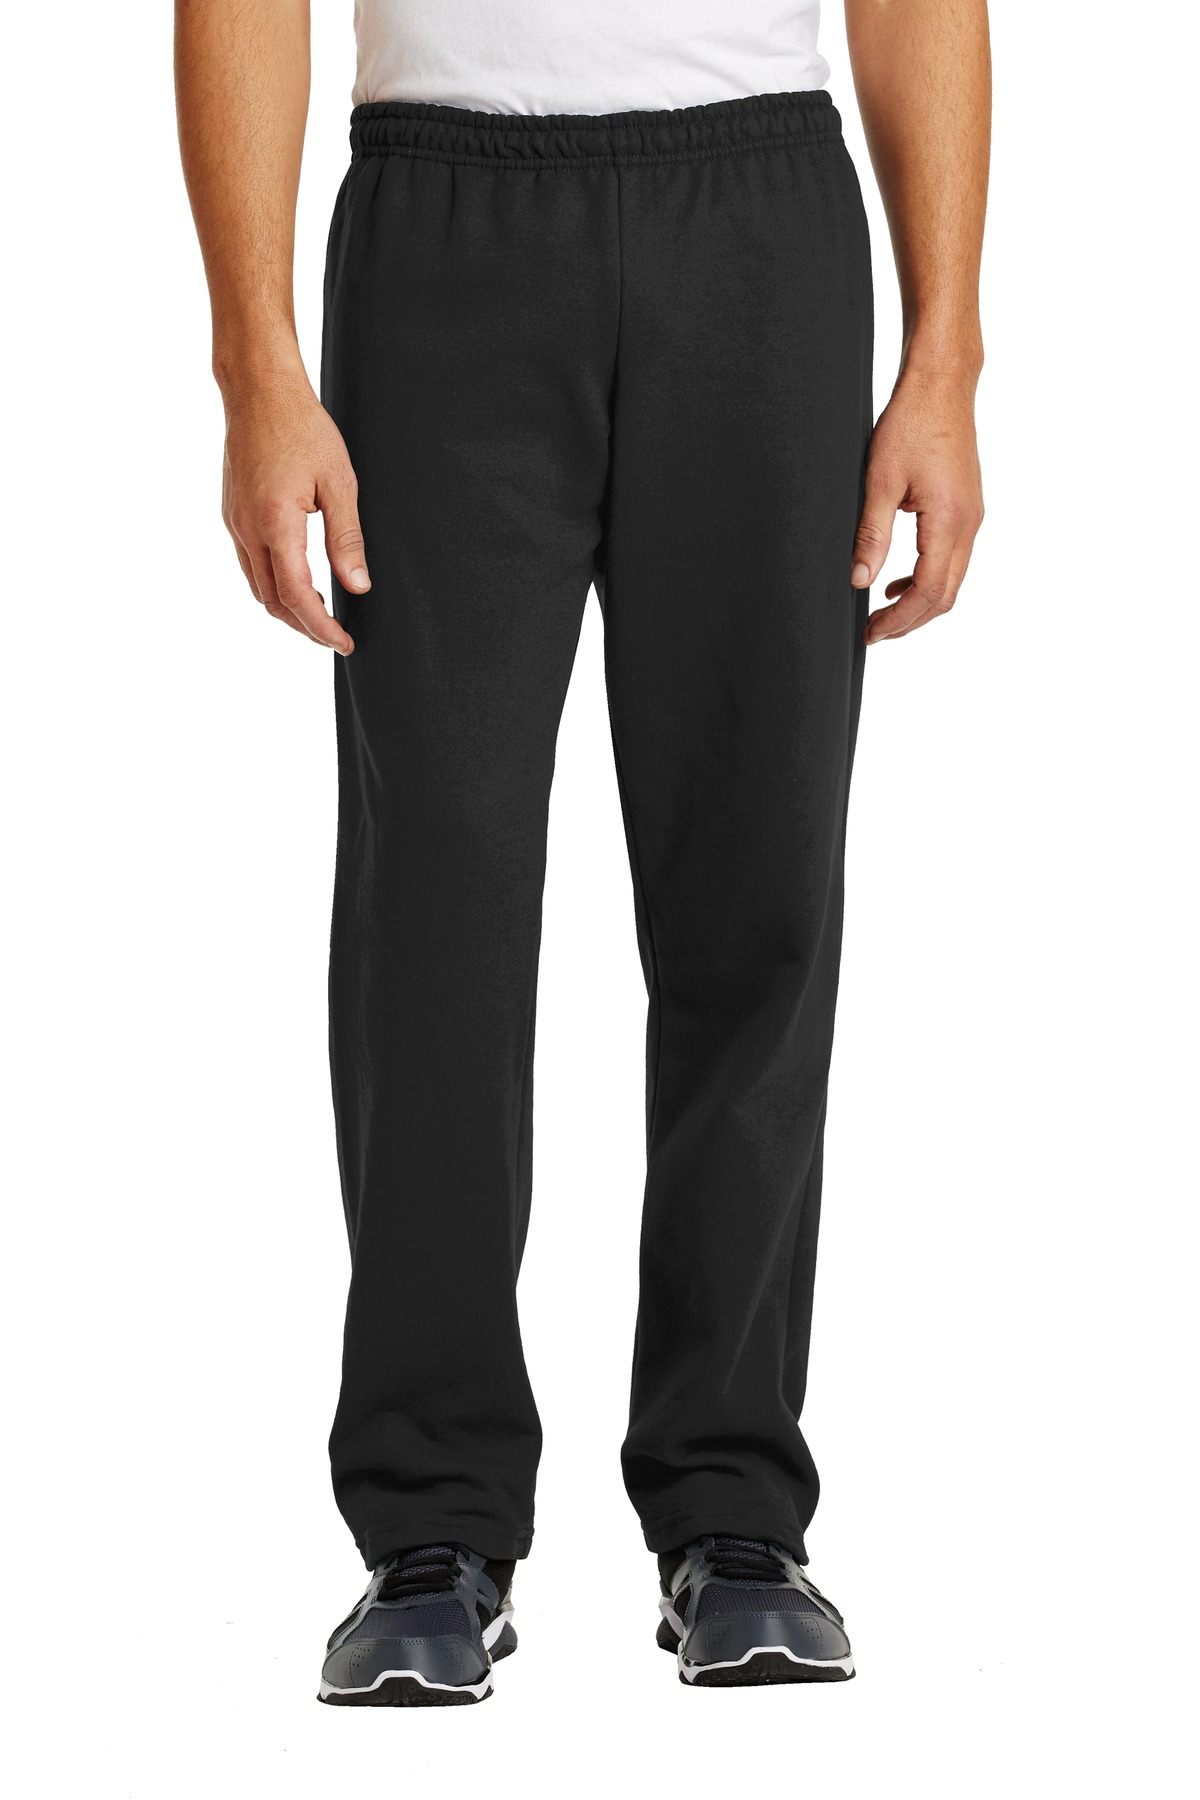 Gildan ®  Heavy Blend ™  Open Bottom Sweatpant. 18400 - Black